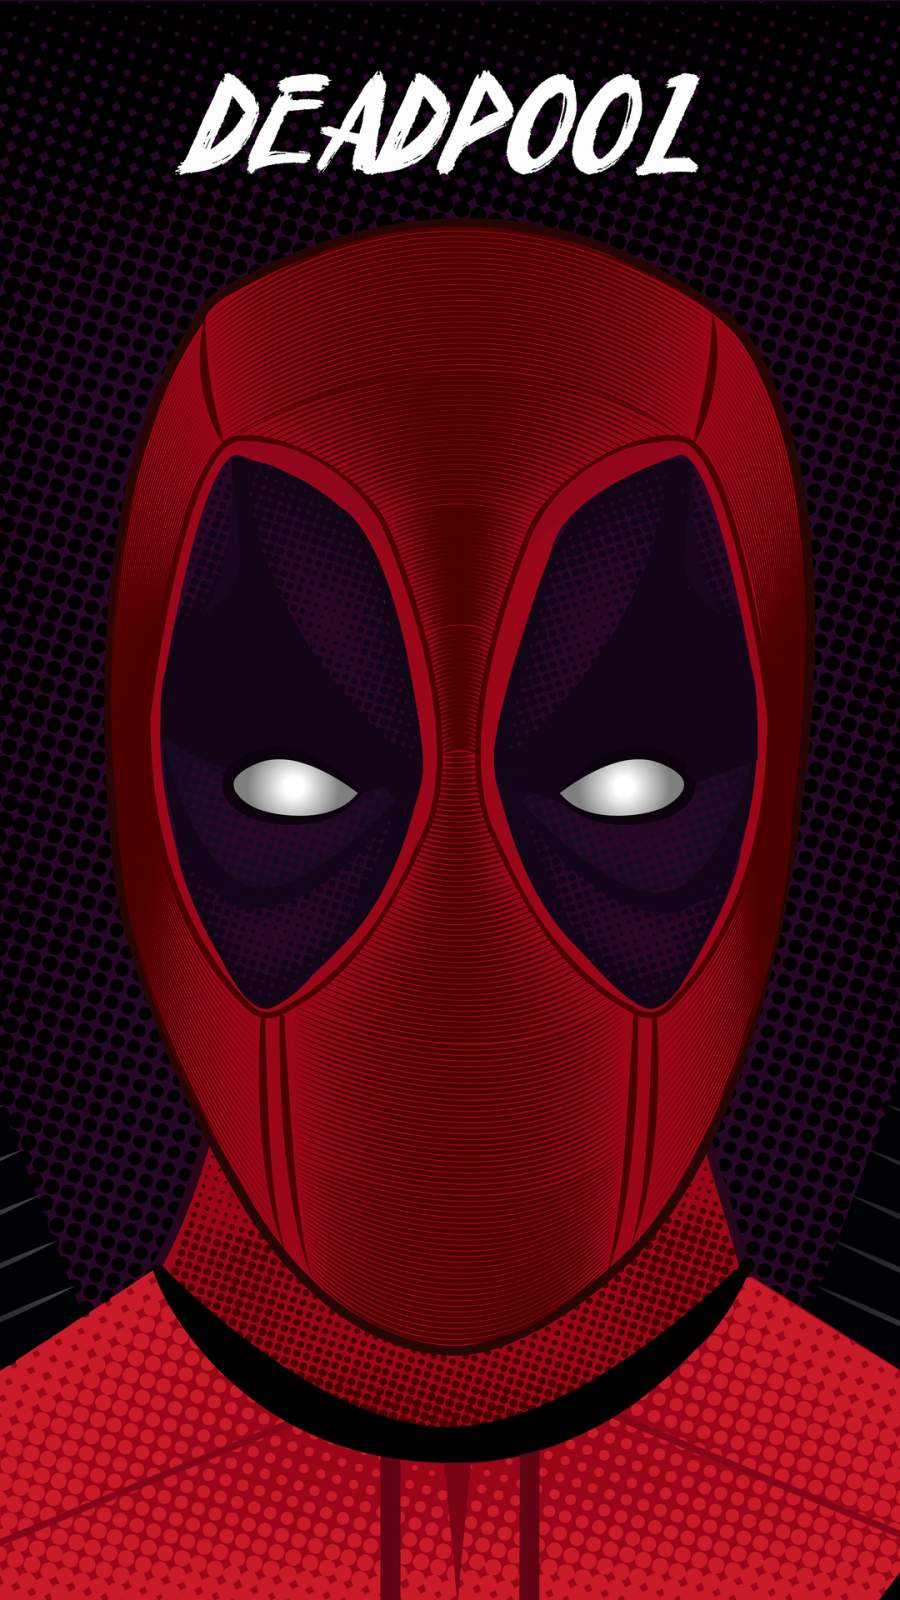 Mr Deadpool iPhone Wallpaper